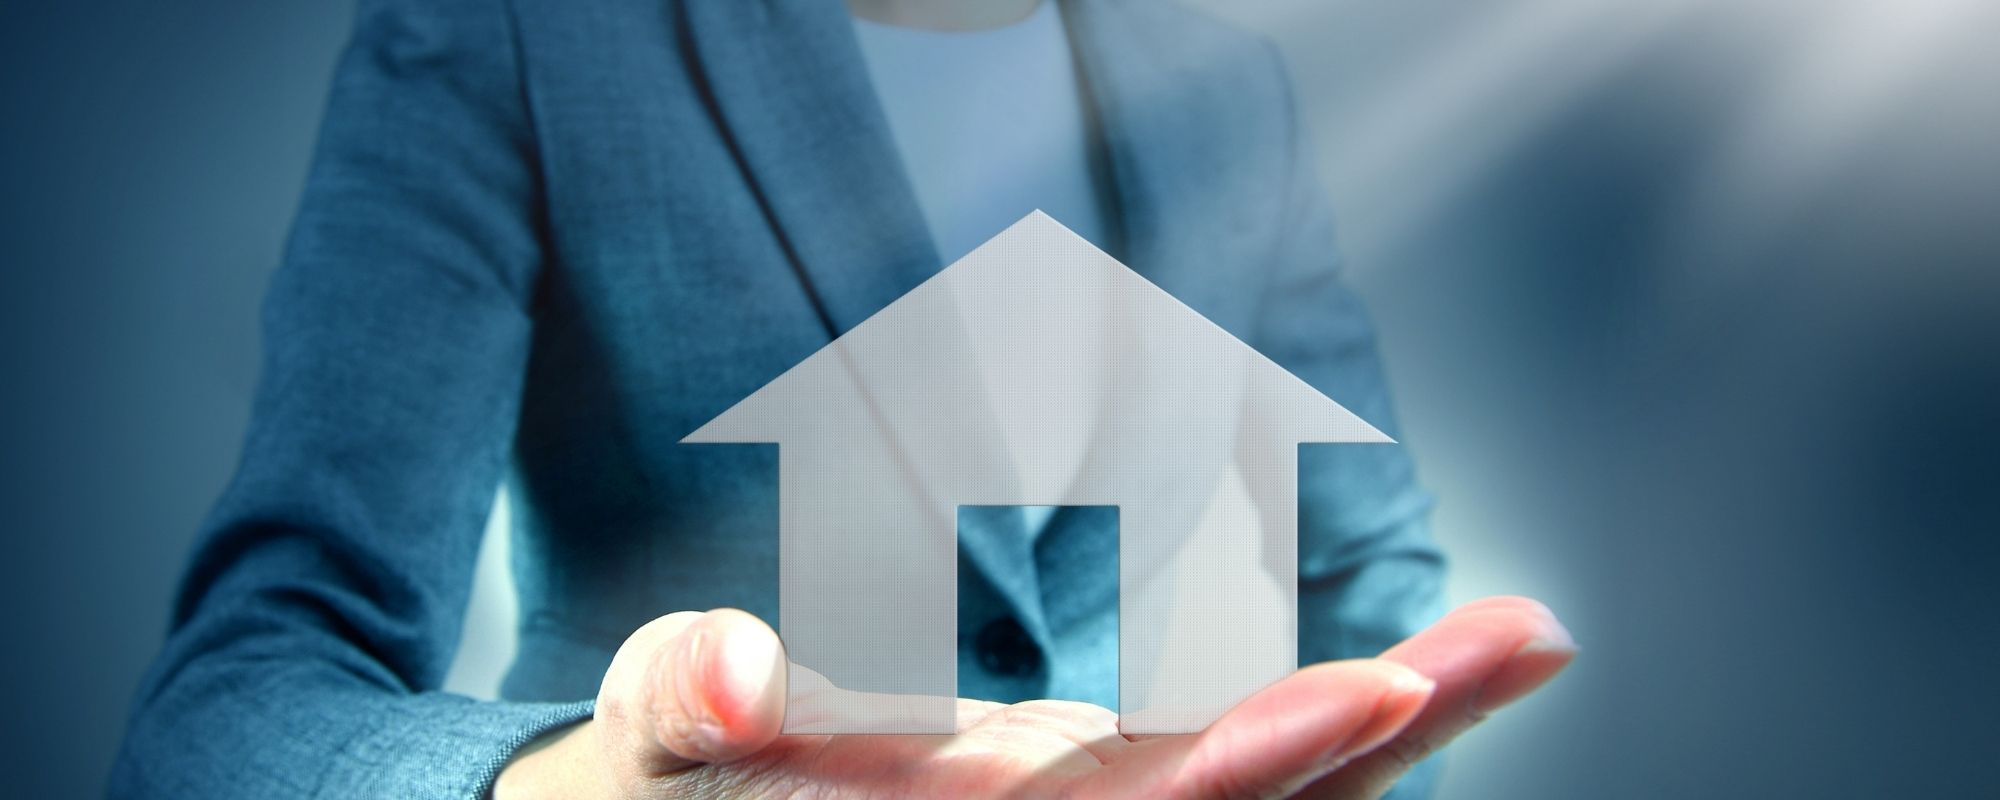 What are Housing Experts Predicting for 2021?